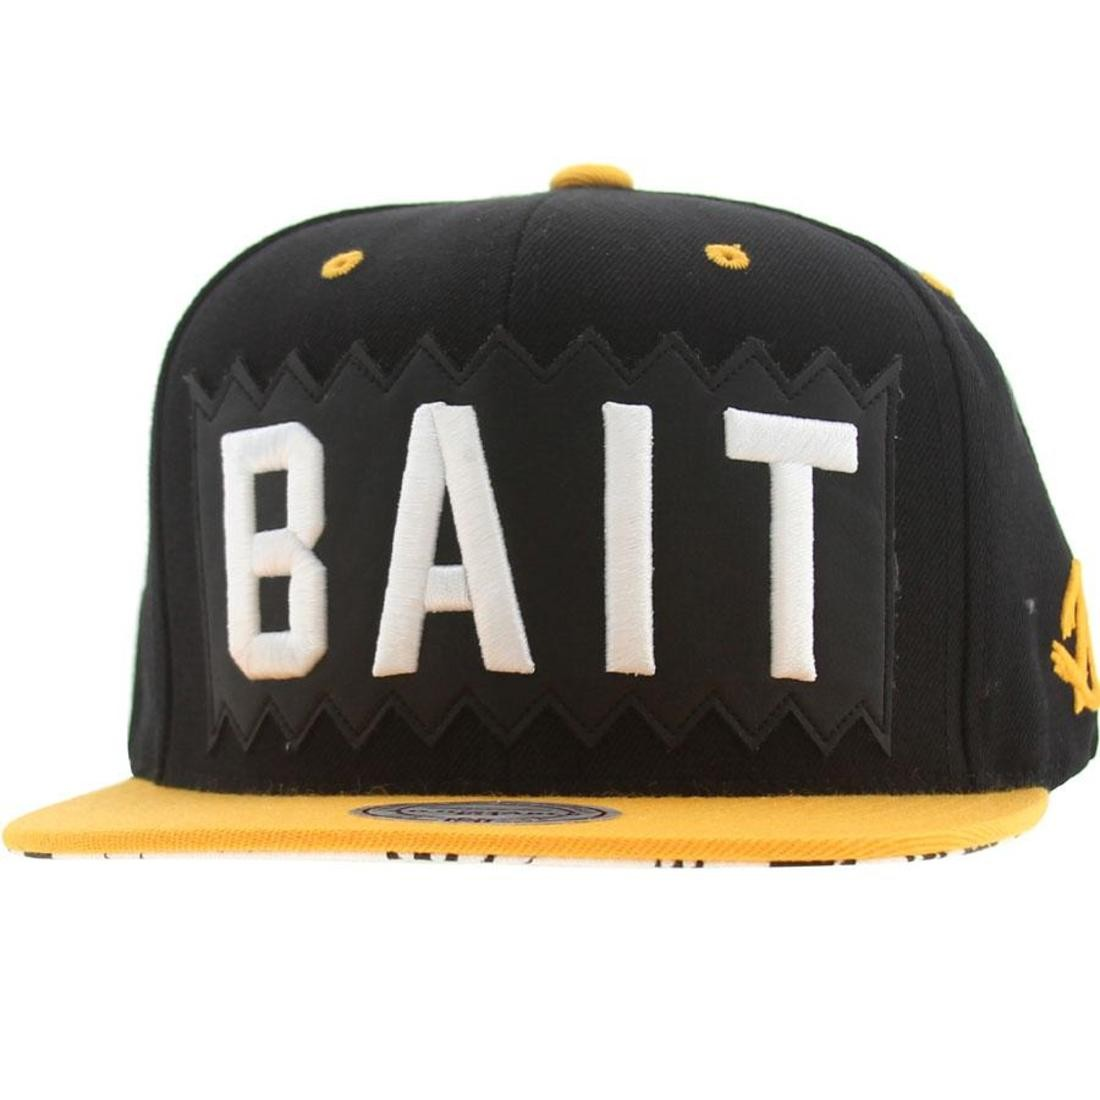 BAIT x Mitchell And Ness Box Logo Snapback Cap (black / gold)